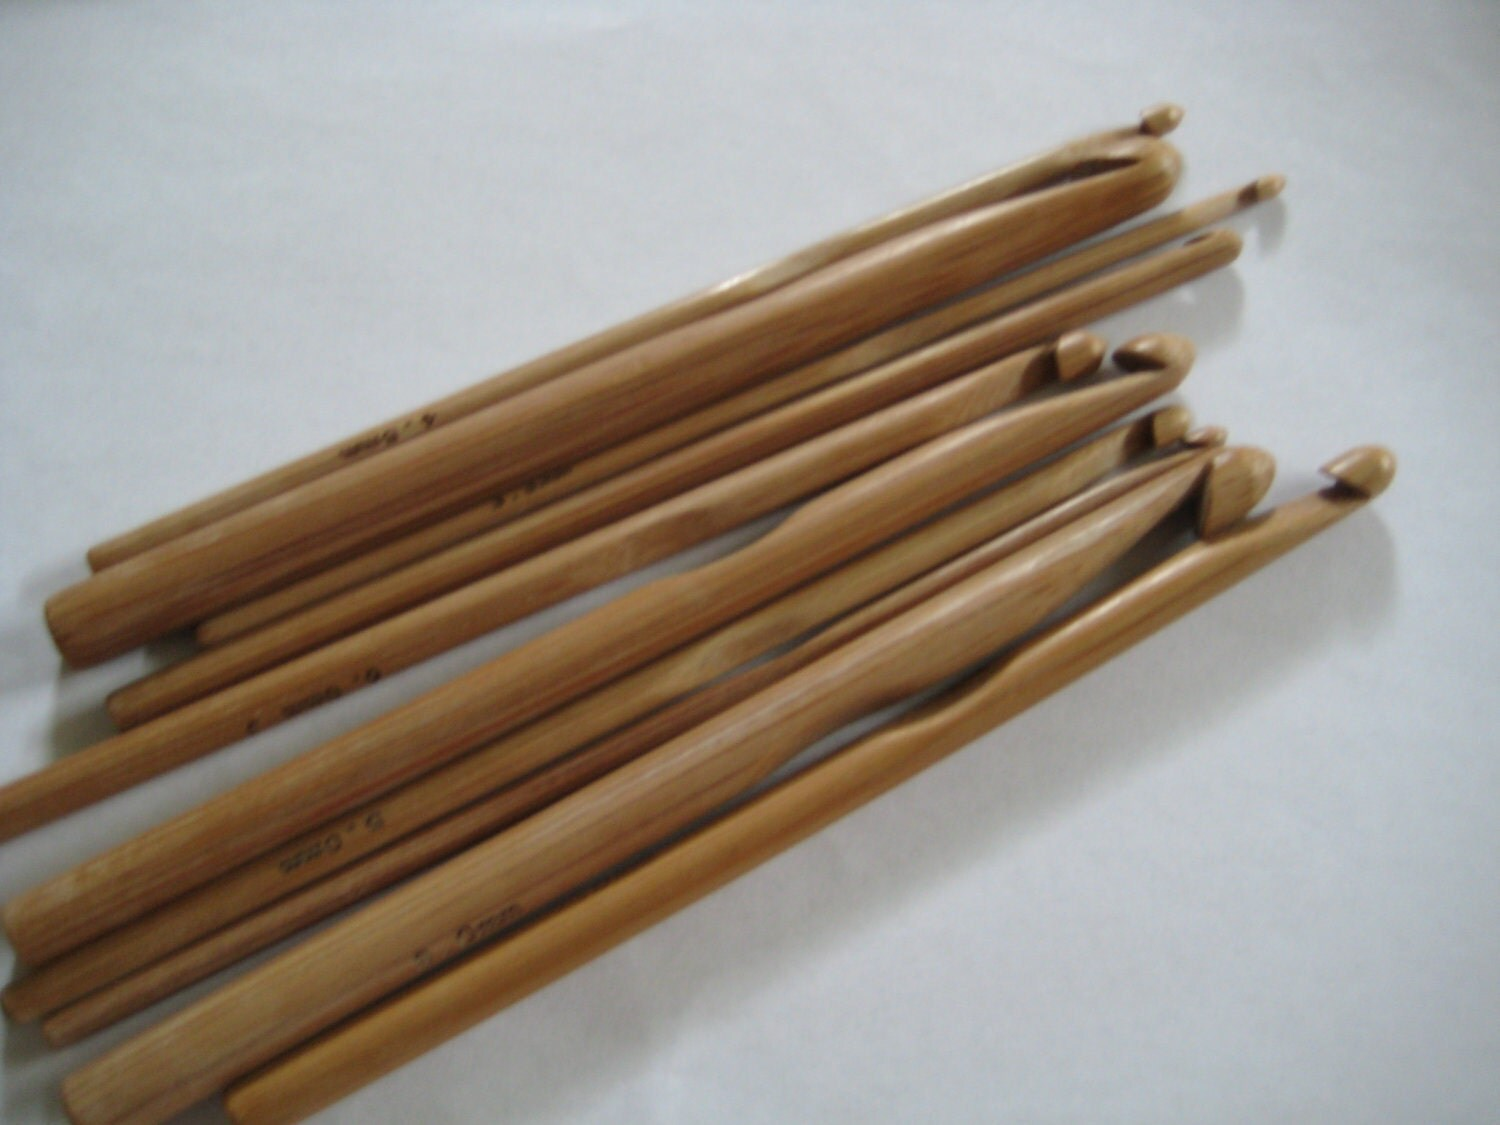 13 size Bamboo crochet hooks 2.75-10.0mm (A COMPLETE set from US size C to size N)